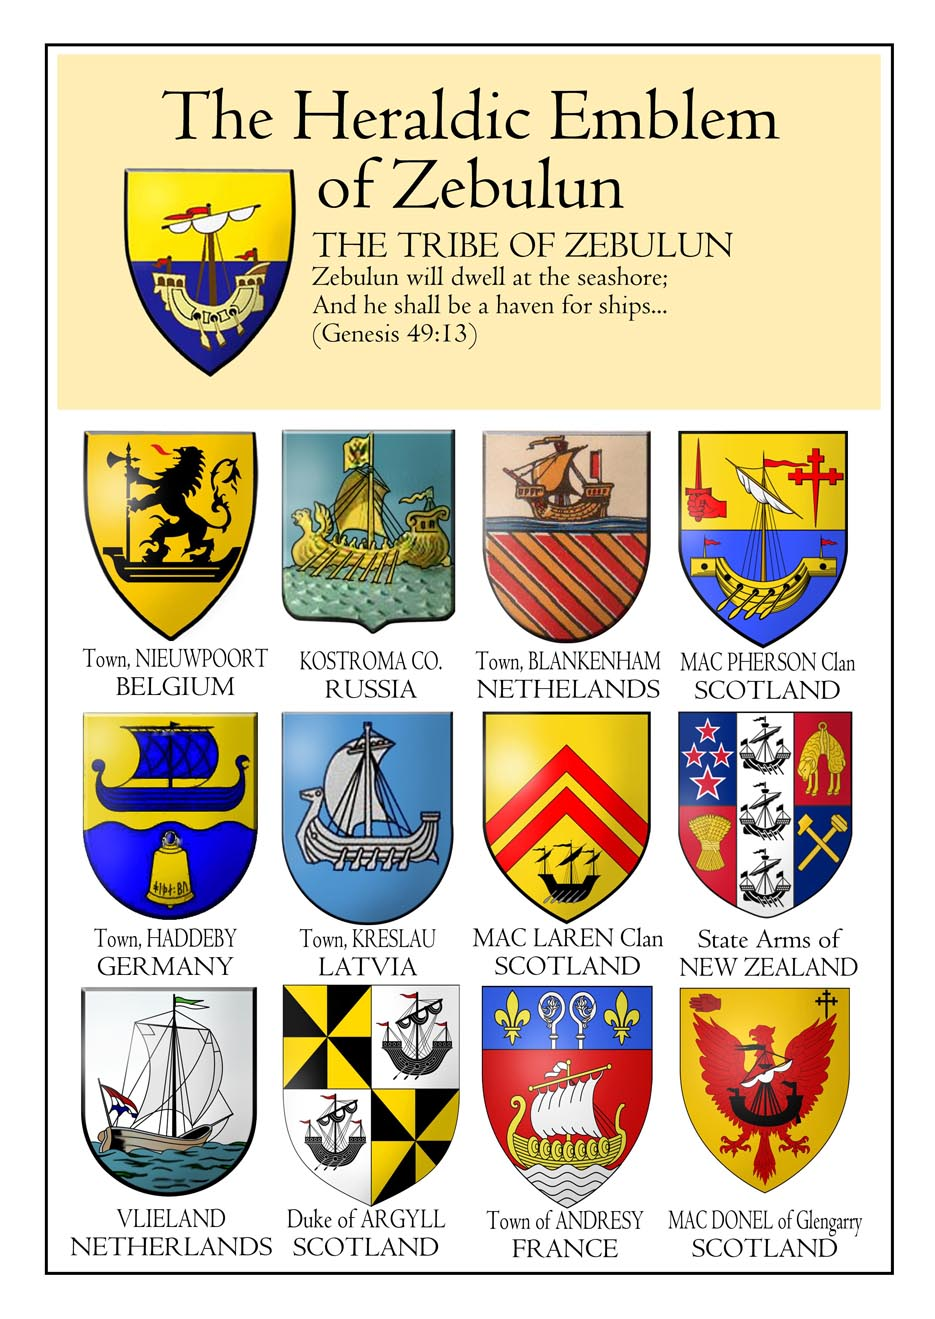 Emblems of the Tribe of Zebulun